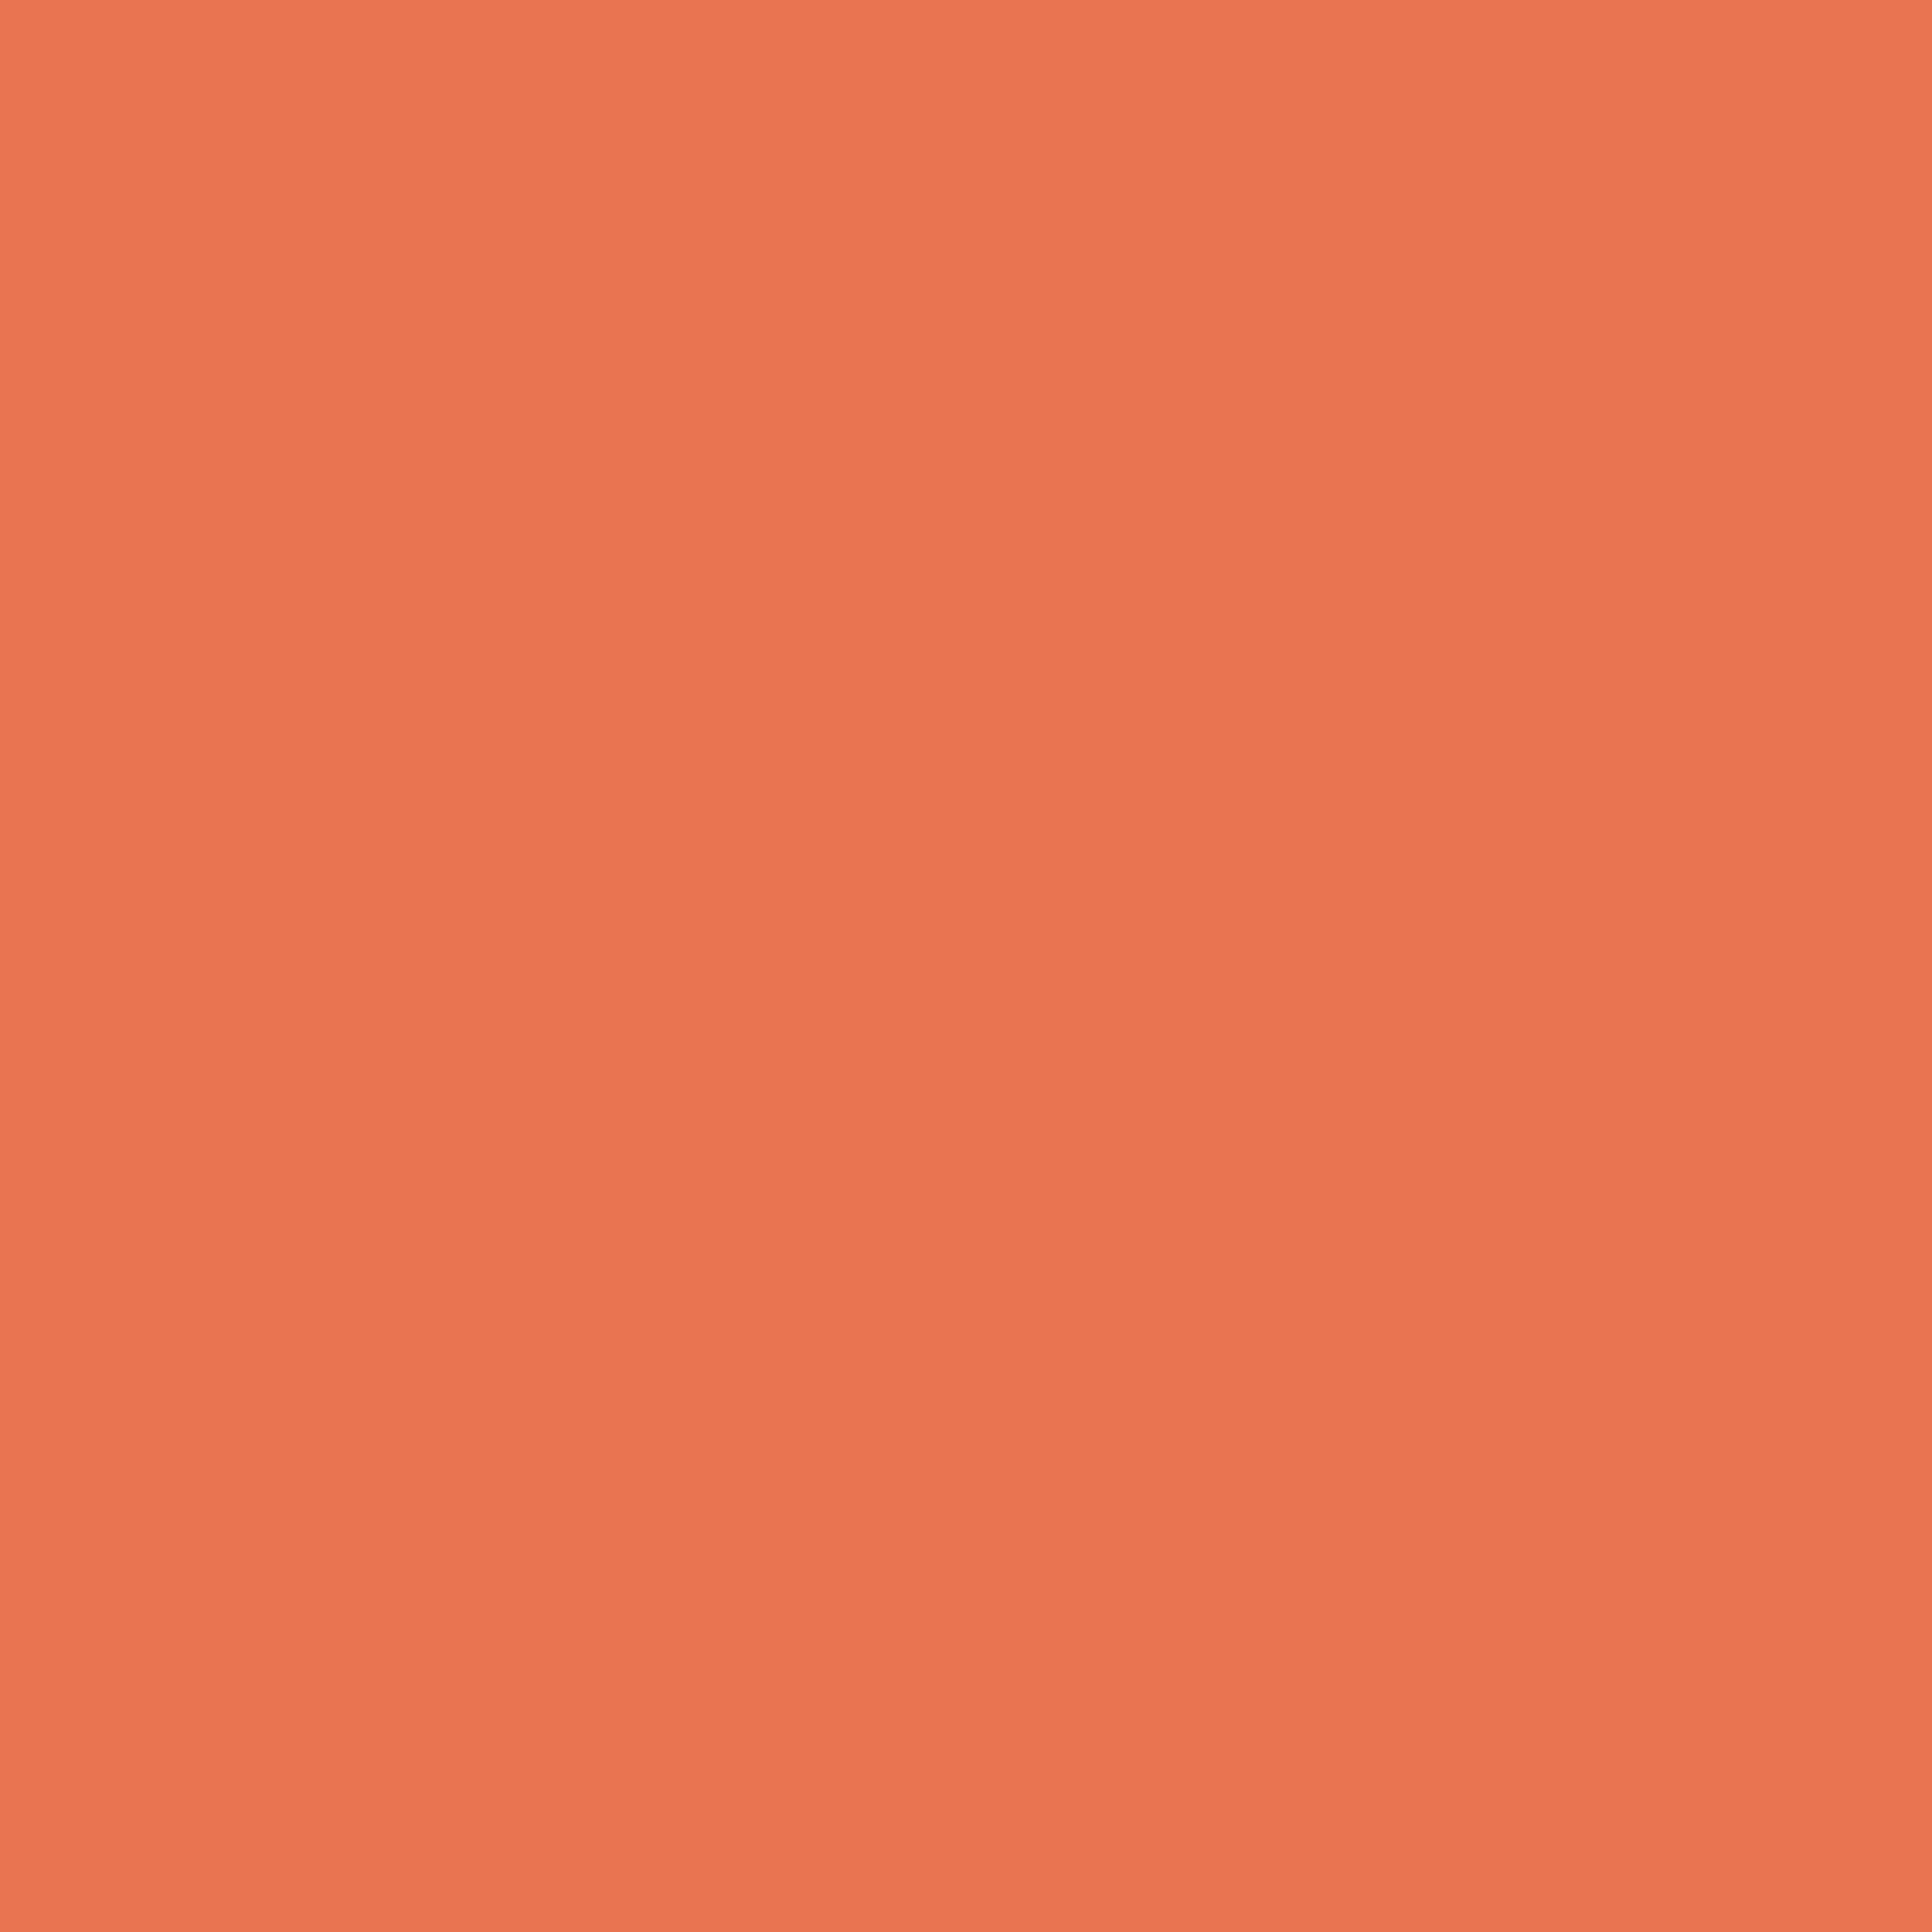 3600x3600 Light Red Ochre Solid Color Background